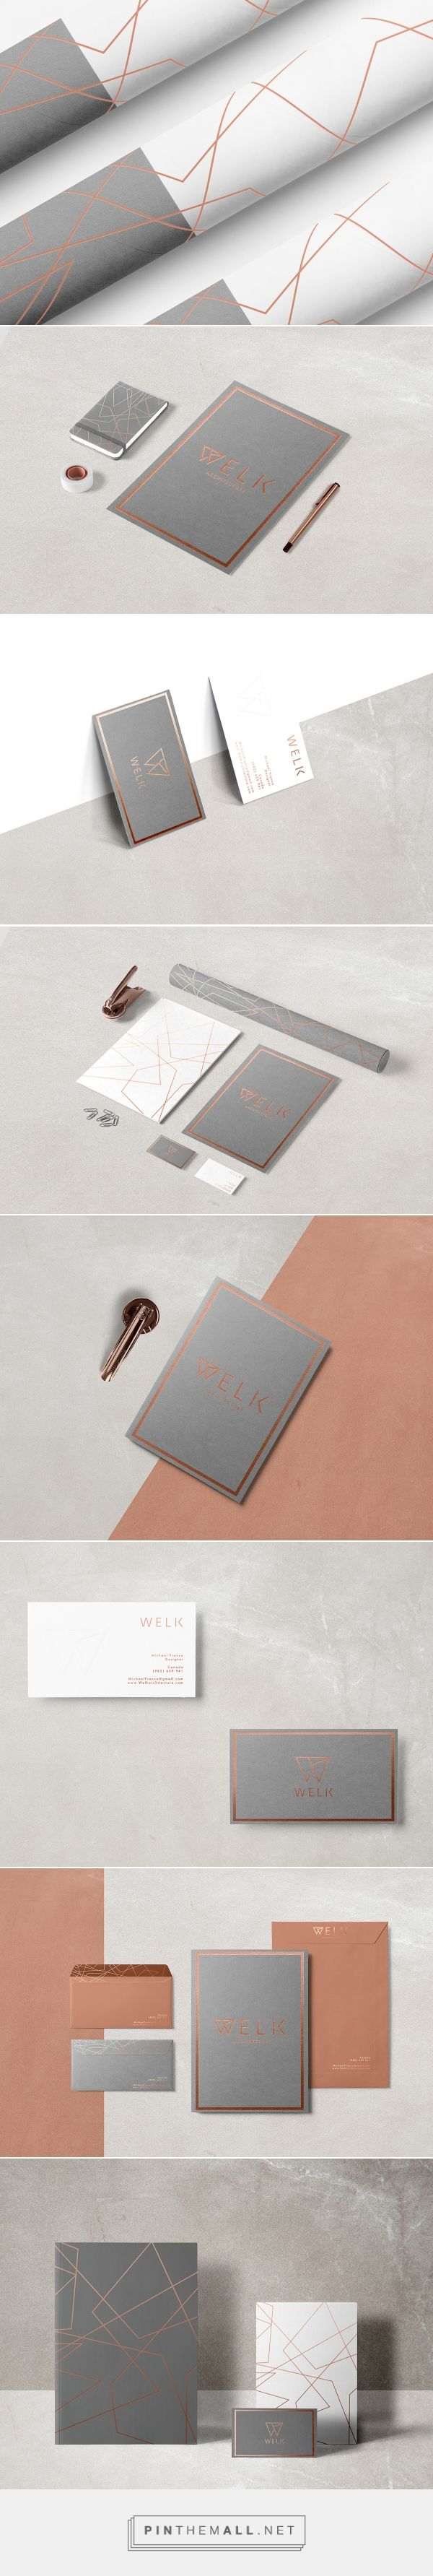 Welk Architecture Branding by Stefan D | Fivestar Branding Agency – Design and Branding Agency & Curated Inspiration Gallery